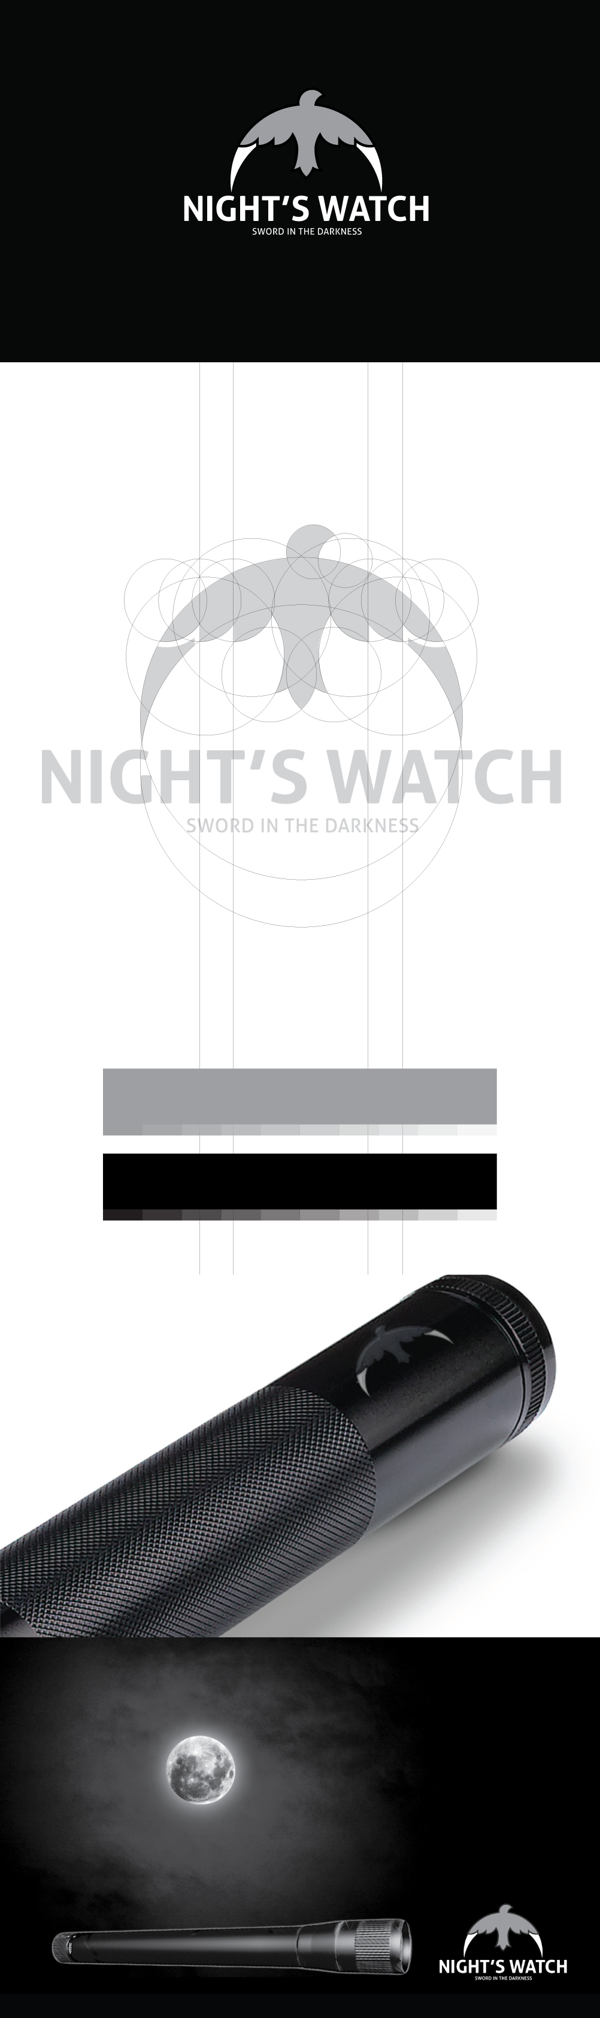 nights-watch-got-graphiste-saint-barth